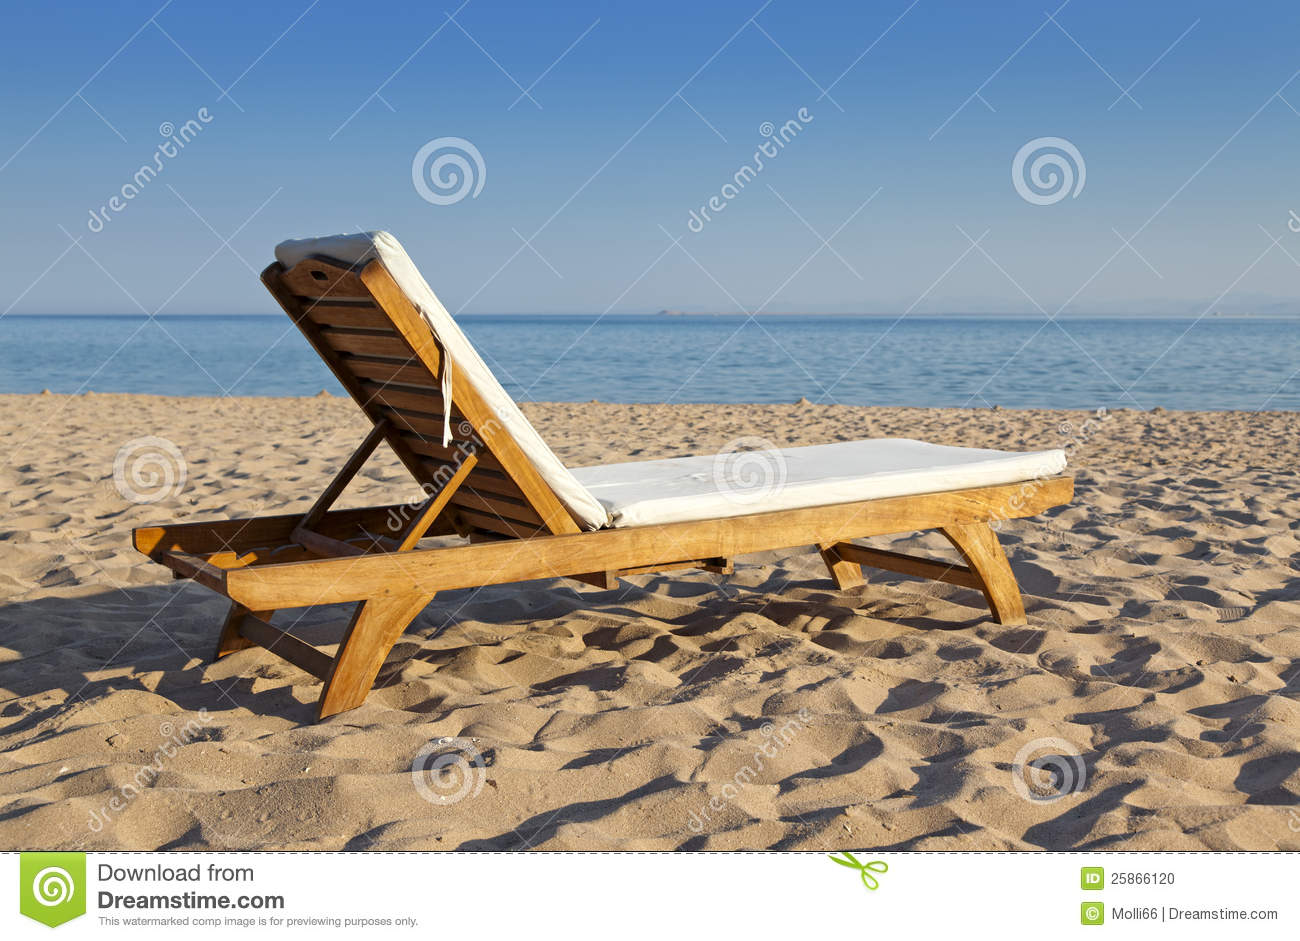 Stock Photo Wooden Beach Chair At Ocean Front Image